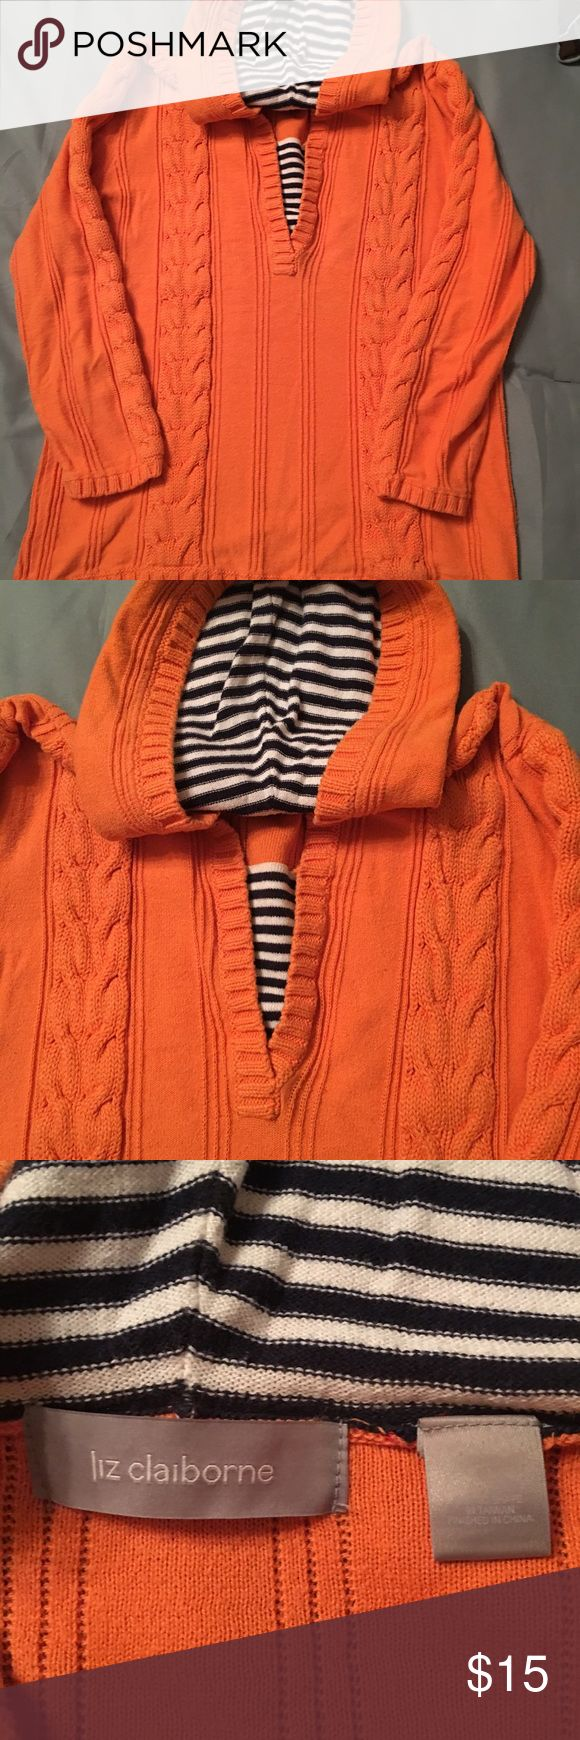 Liz Claiborne sweater Gorgeous orange hooded sweater with navy and white stripes in the hood. This sweater is super cute and in excellent condition. Liz Claiborne Sweaters